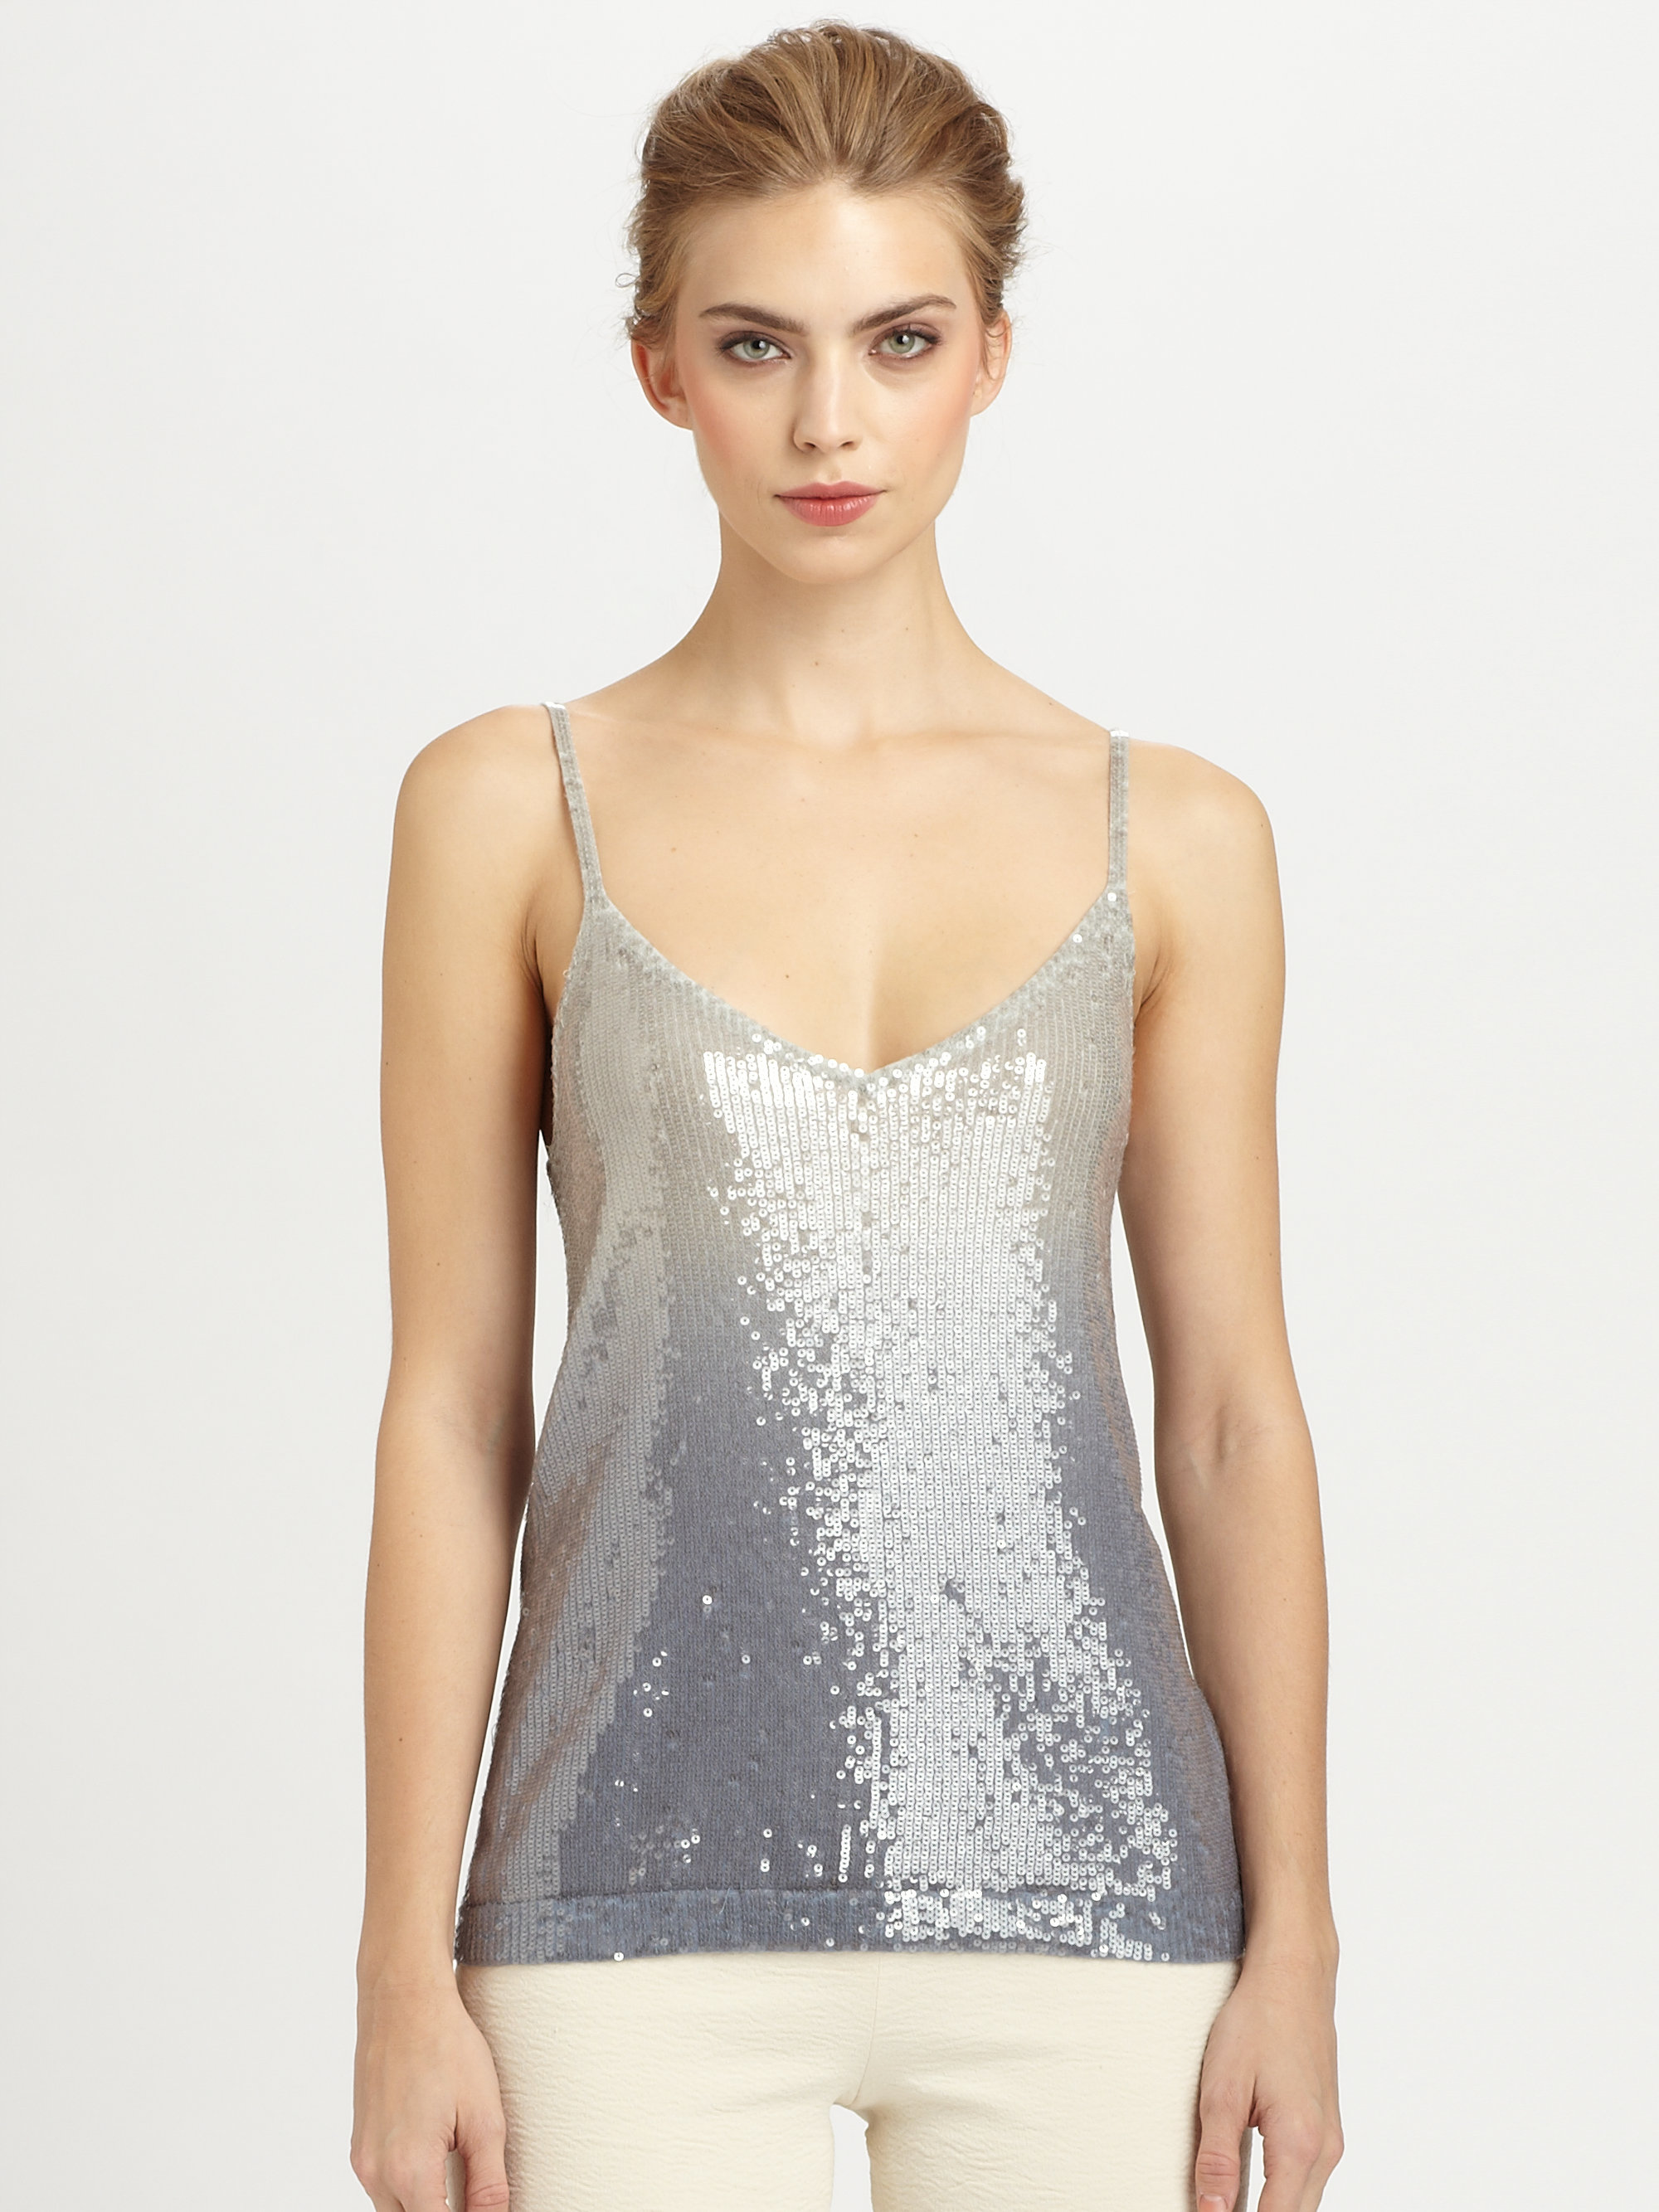 Donna karan new york cashmere ombreacute sequined tank in for Donna karen new york